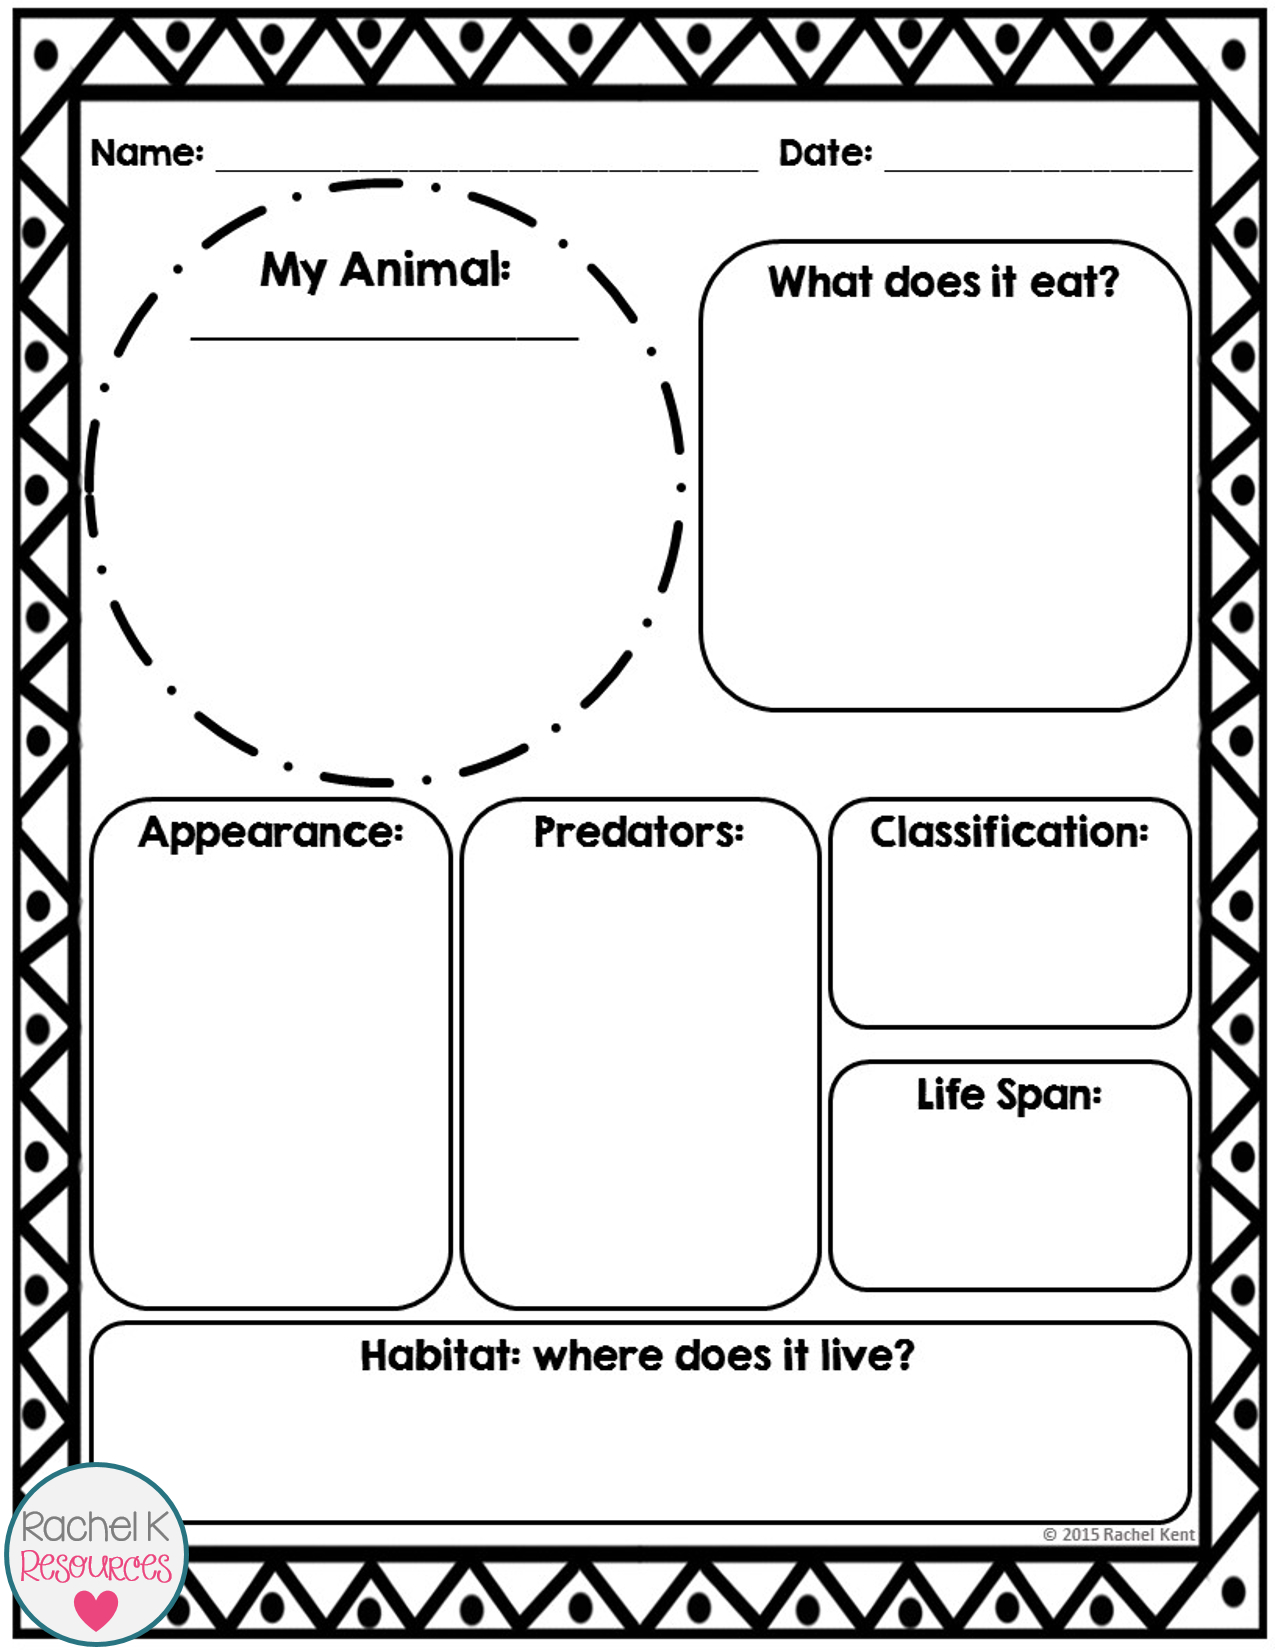 Animal Report Template | Science | Report Template Inside Template For Information Report